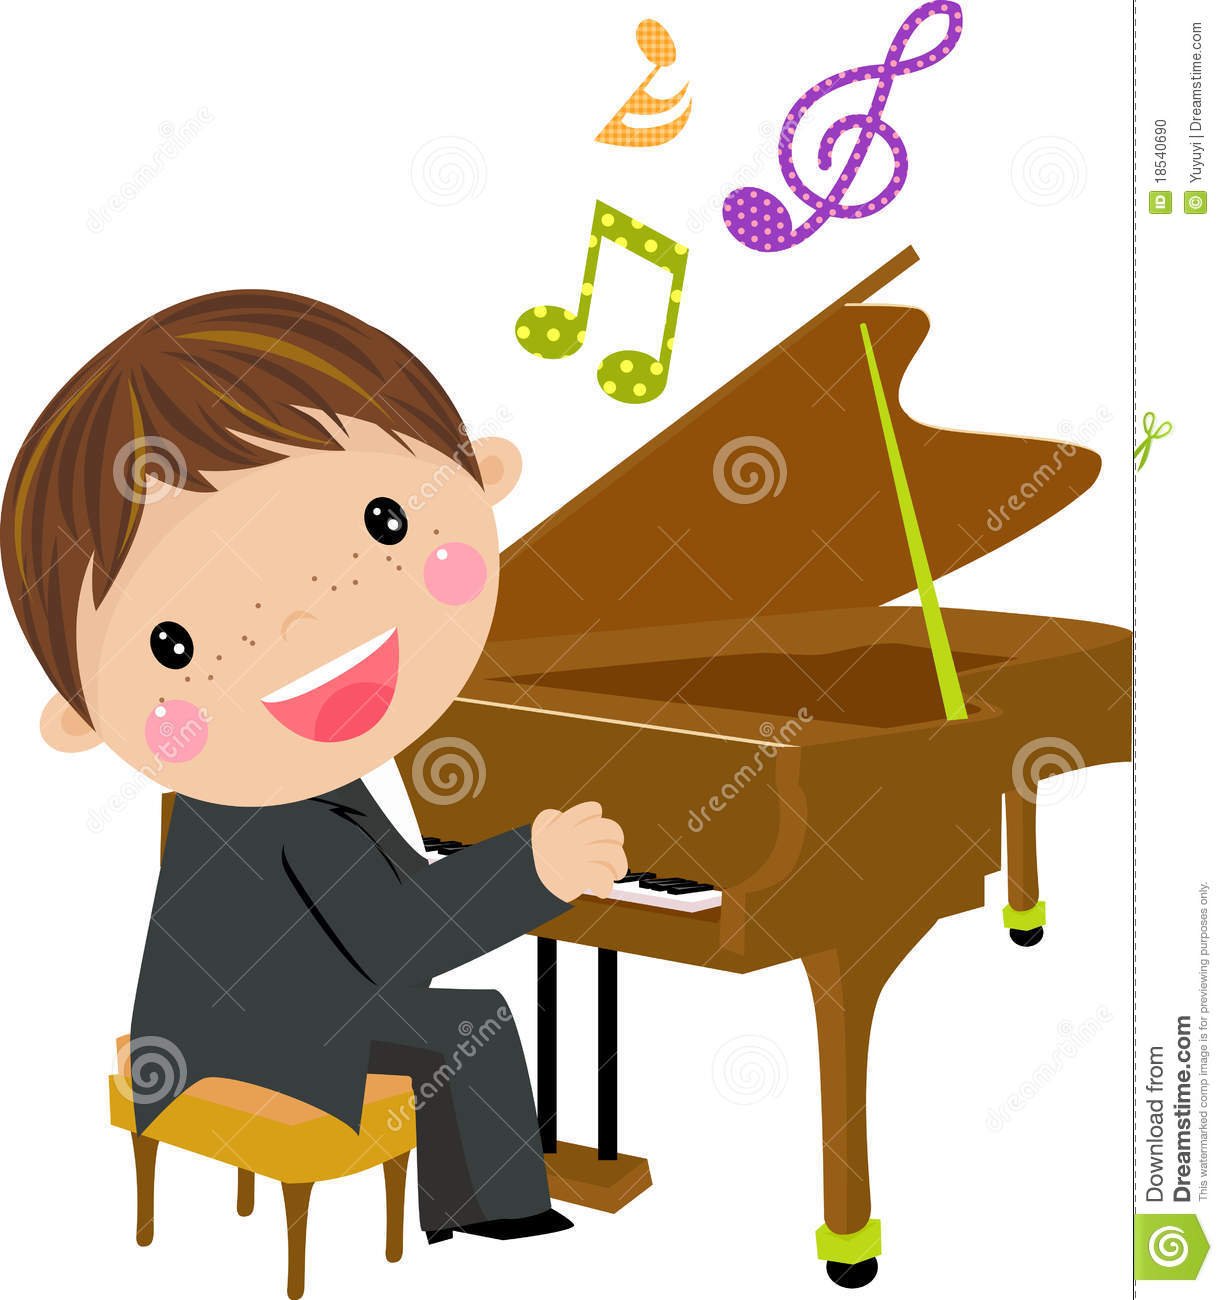 clipart girl playing piano - photo #5